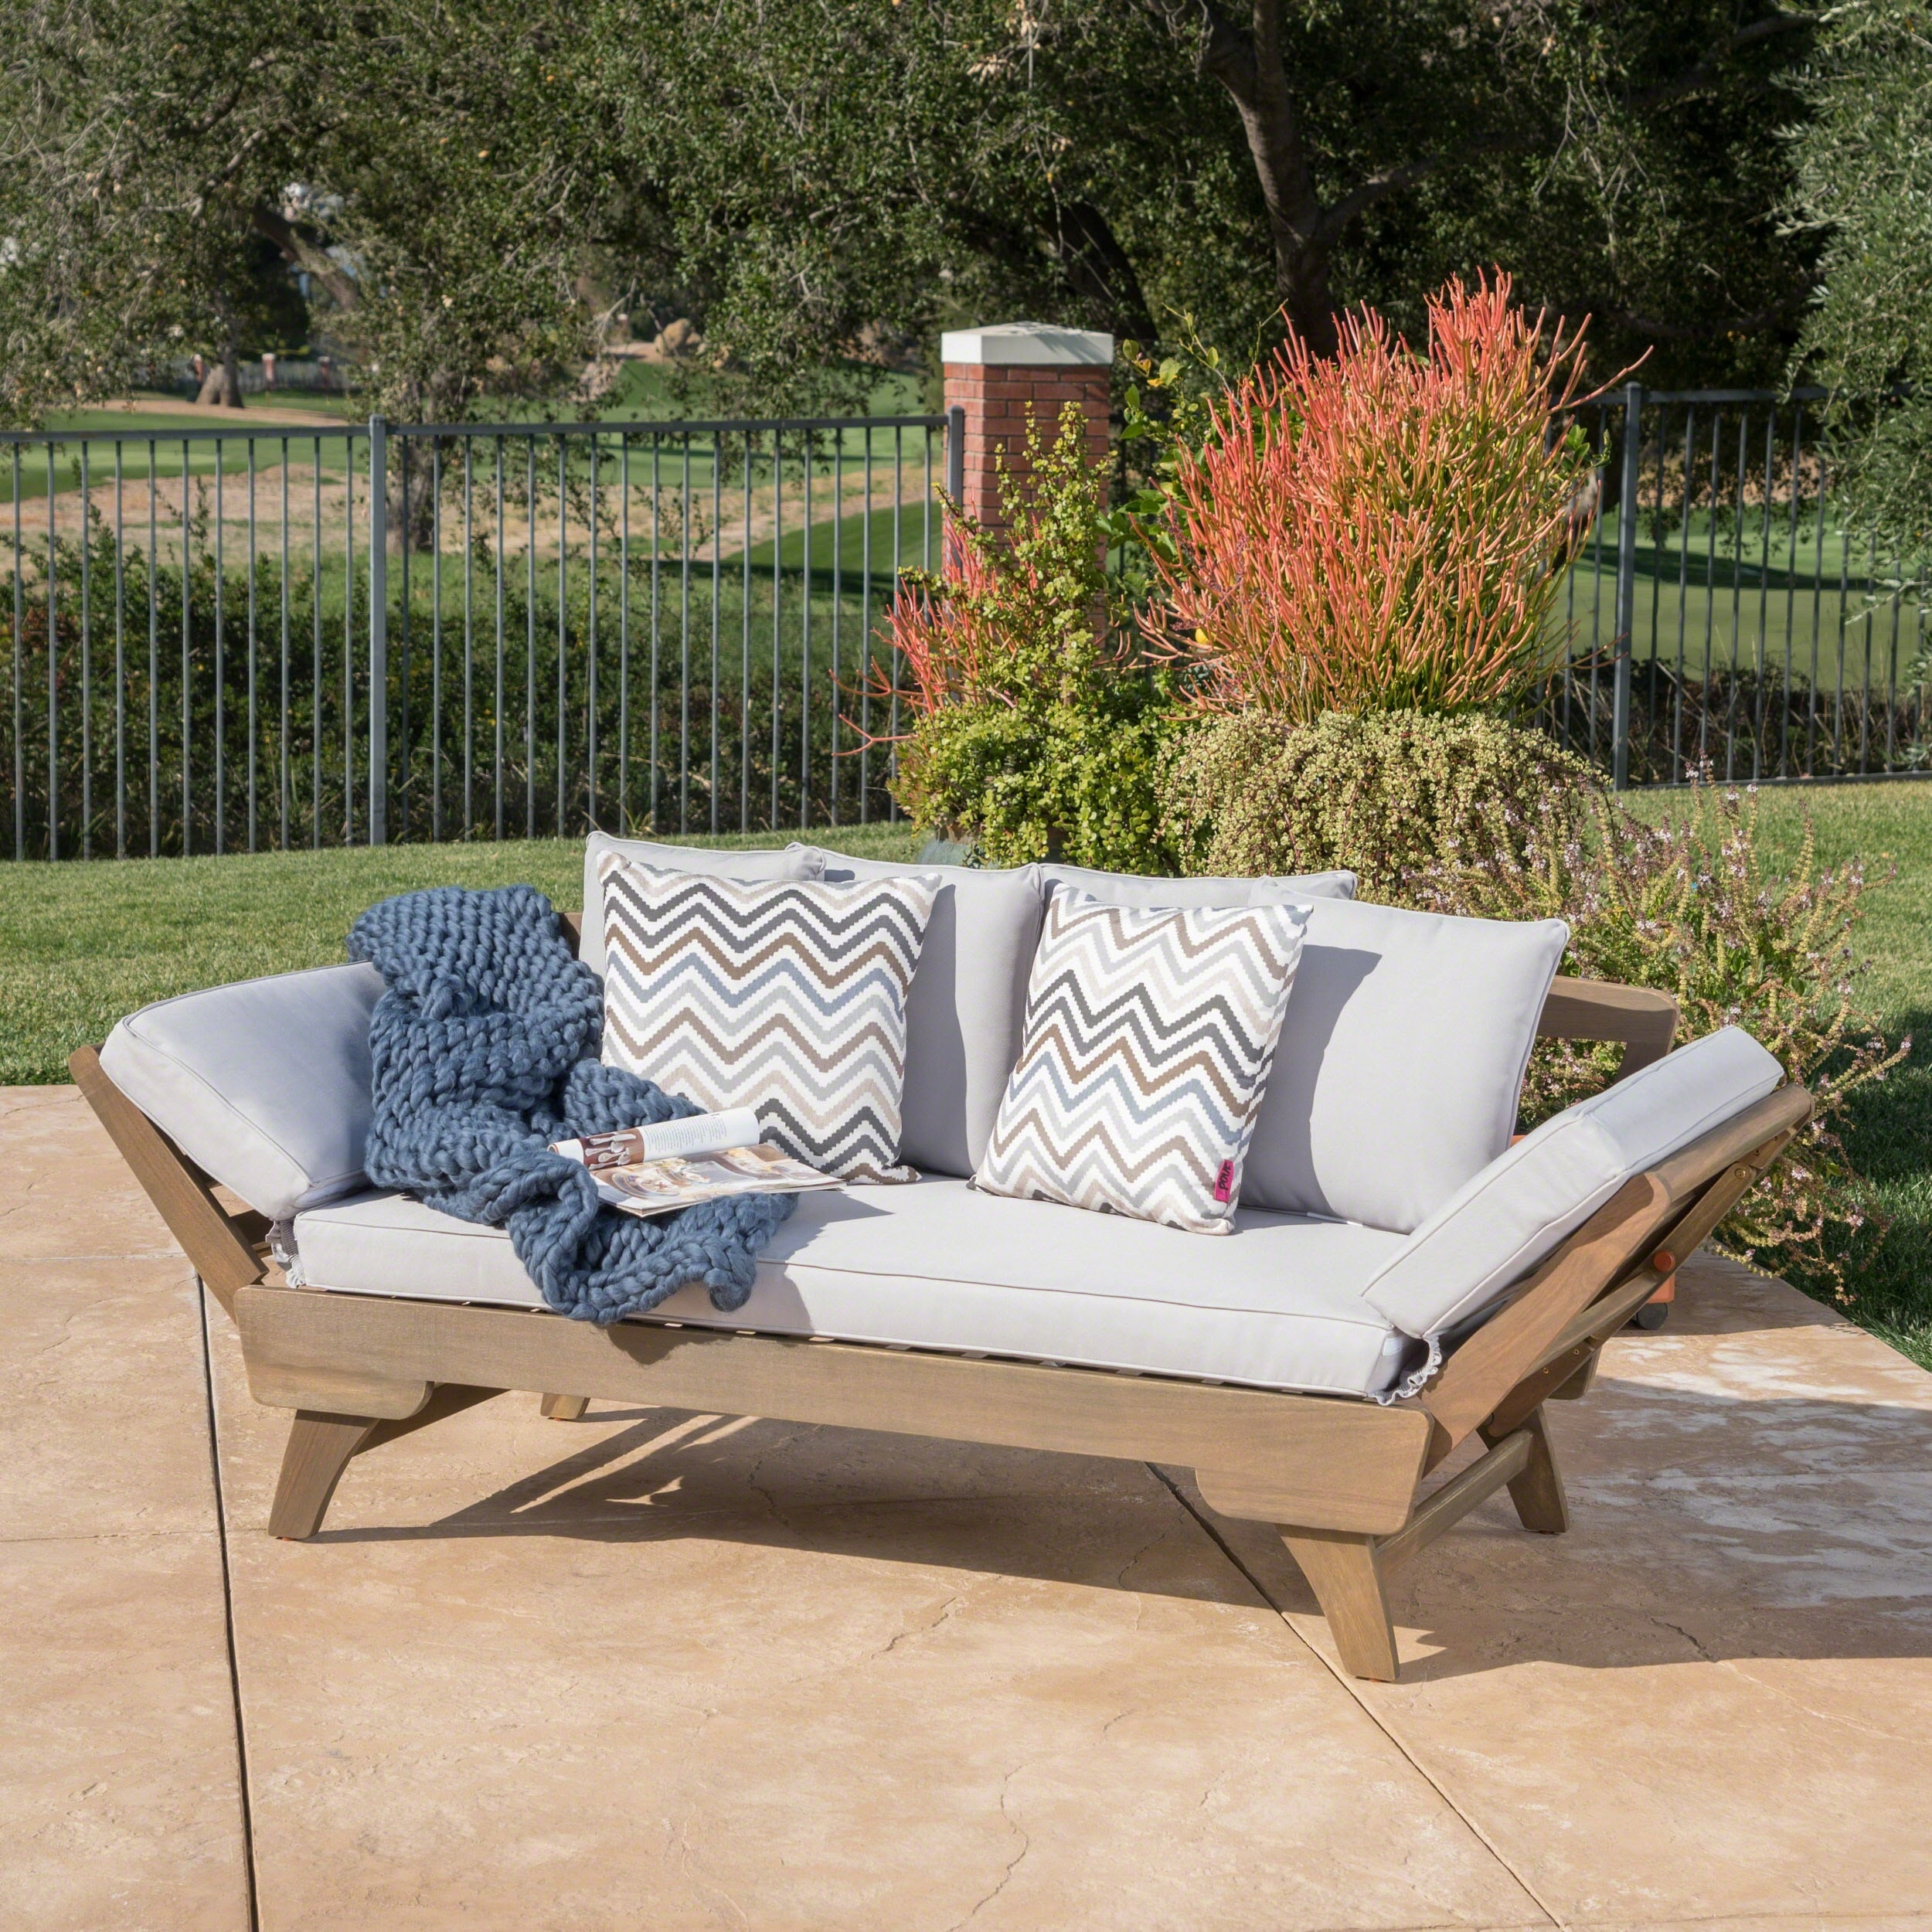 day target frame daybed covers canopy outdoor com utagriculture patio perth